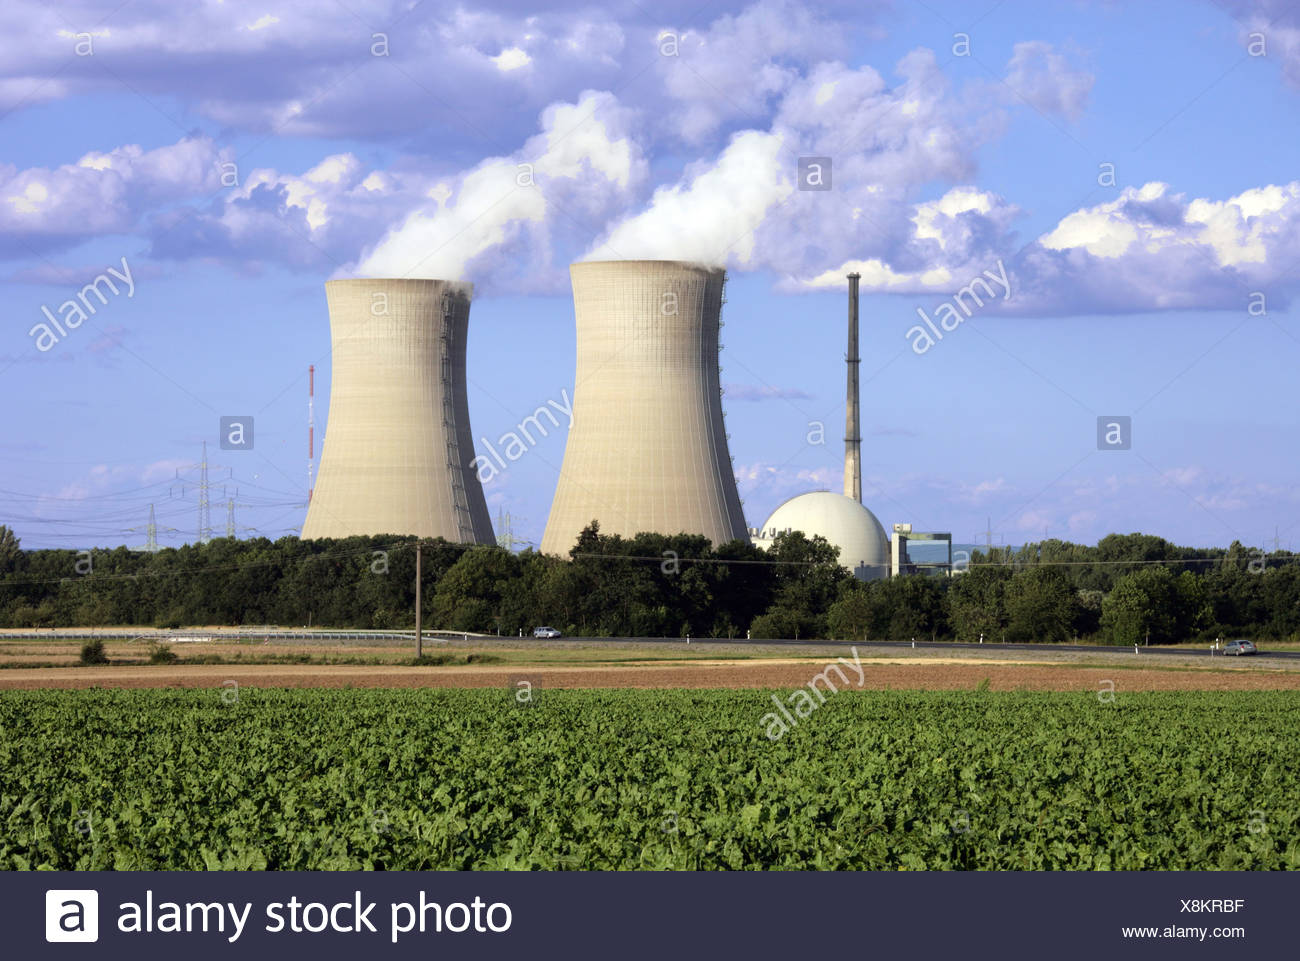 energy, Grafenrheinfeld Nuclear Power Plant, Bavaria, Germany, exterior view, Additional-Rights-Clearance-Info-Not-Available - Stock Image